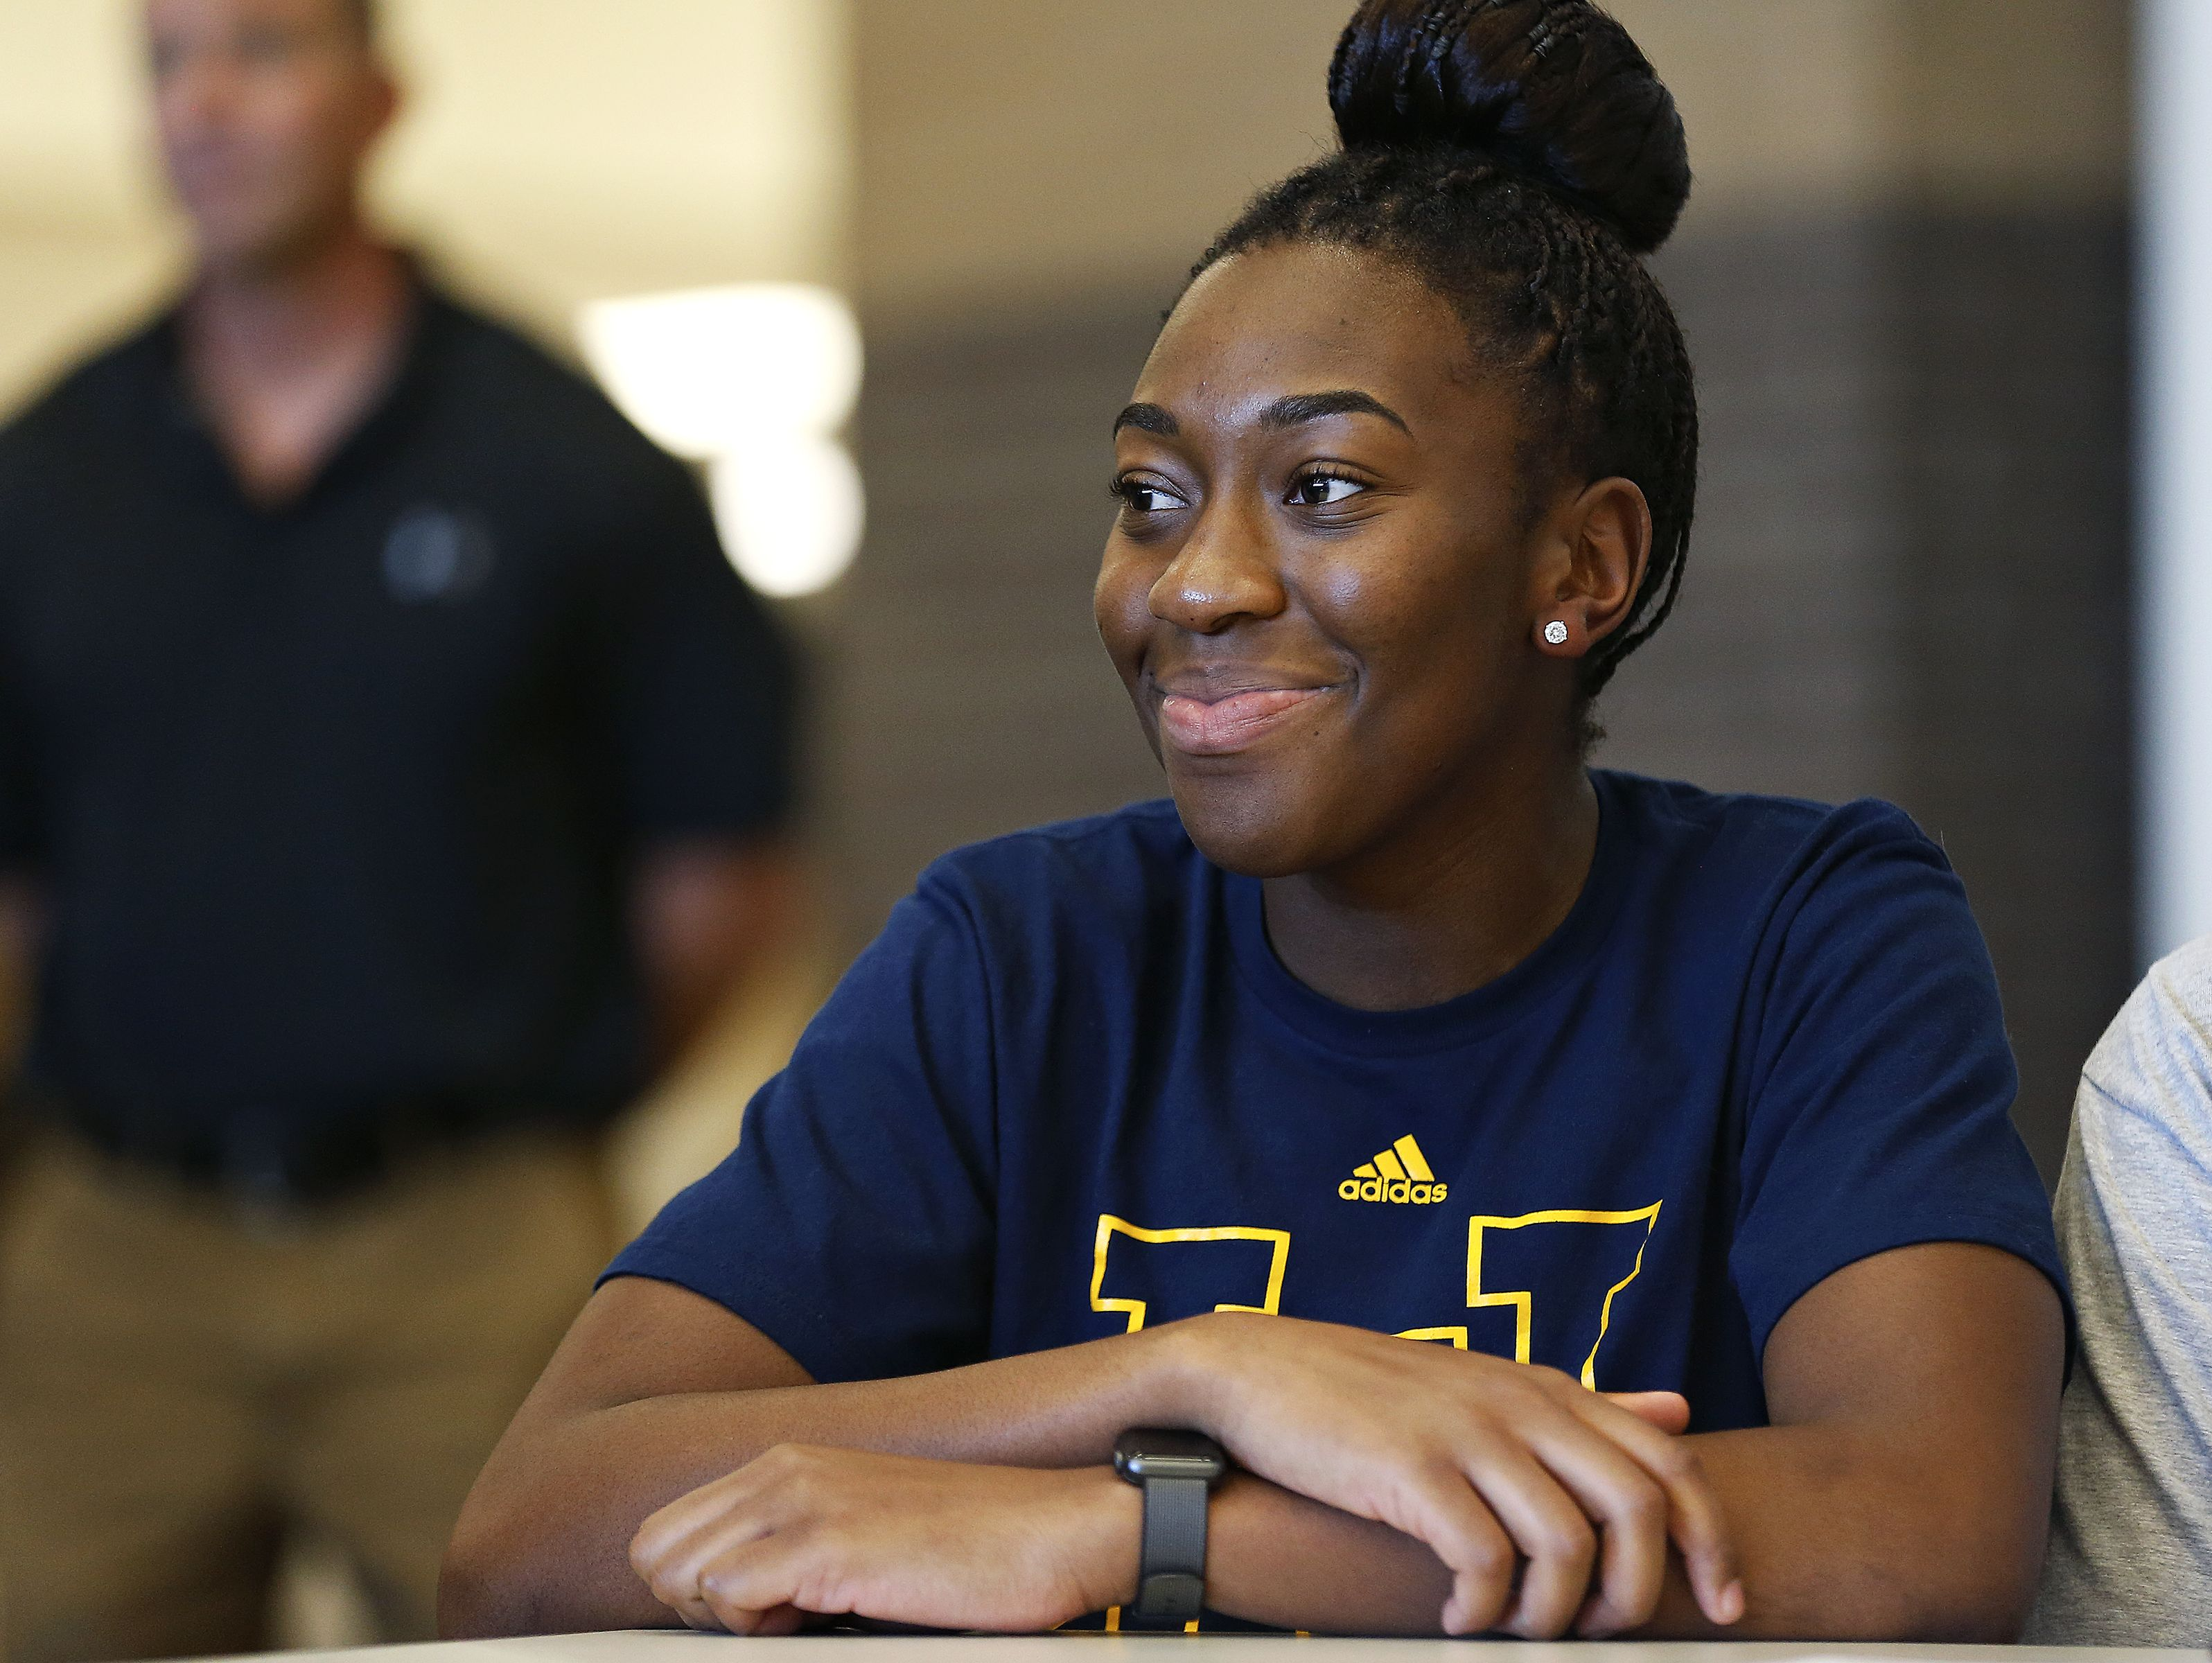 Jordan Sanders waits to sign her national letter of intent during a National Signing Day event held for Chiefs athletes at Kickapoo High School in Springfield, Mo. on Nov. 9, 2016.